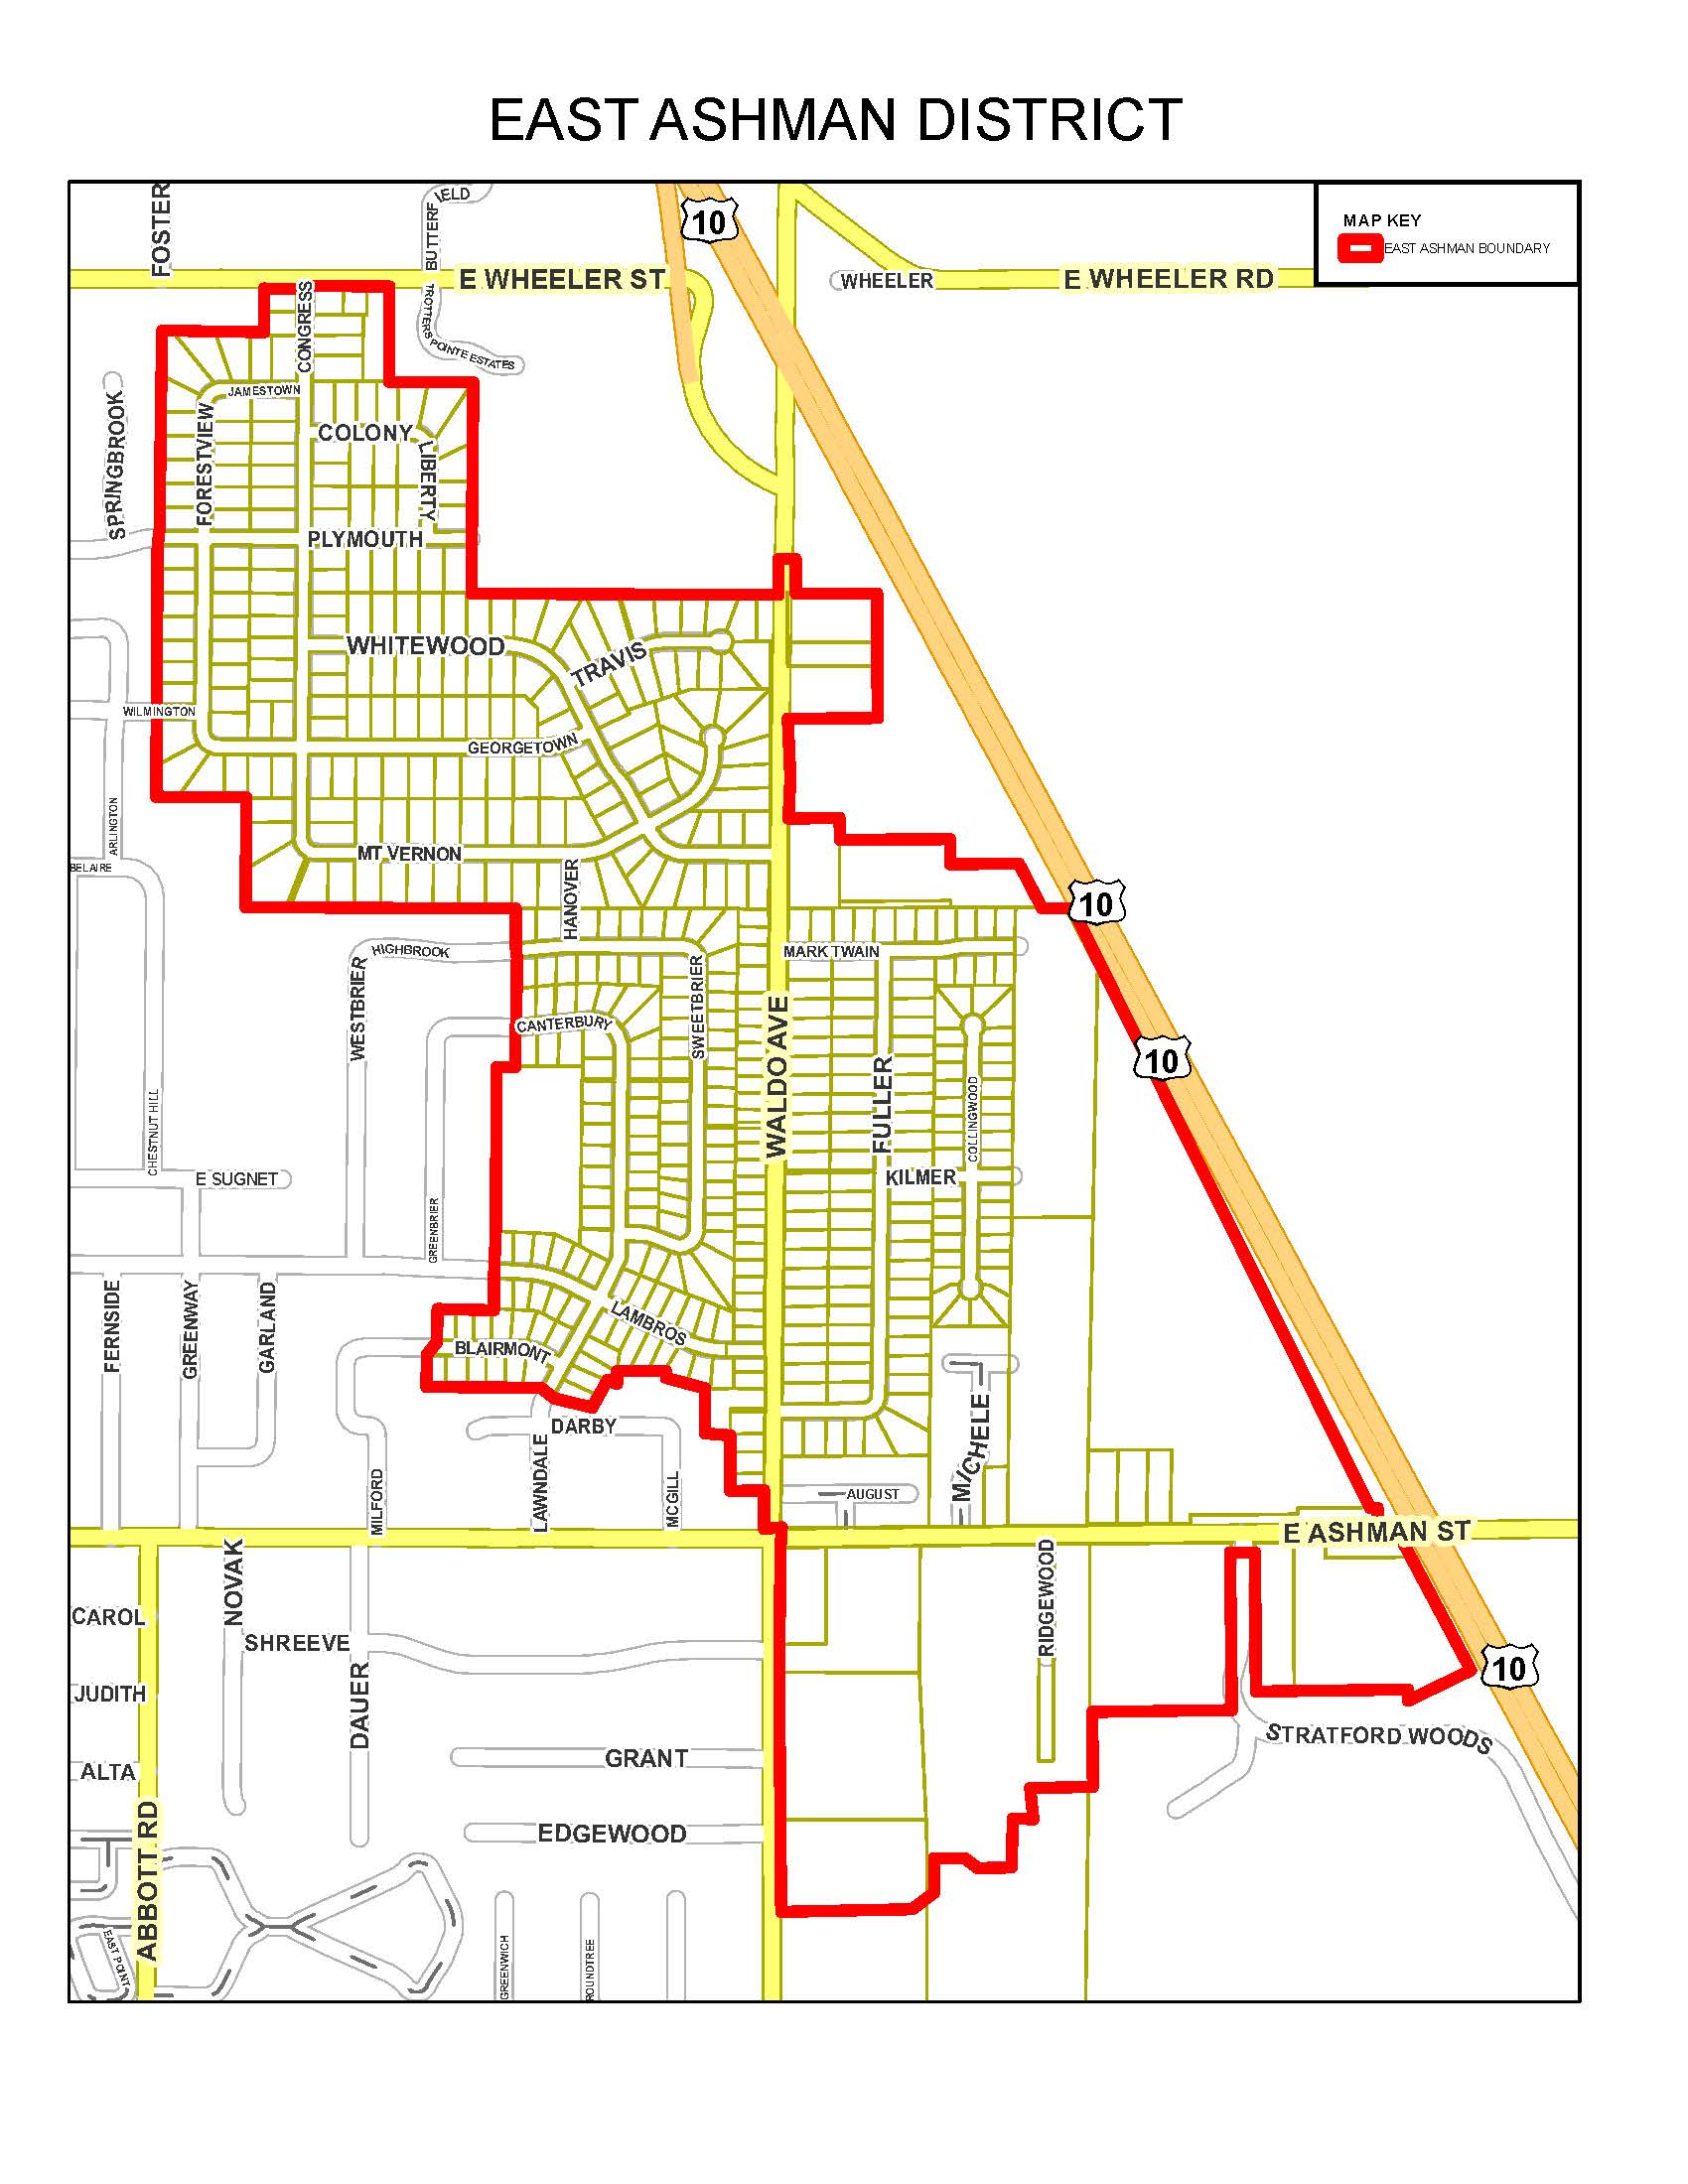 Sewer smoke testing map